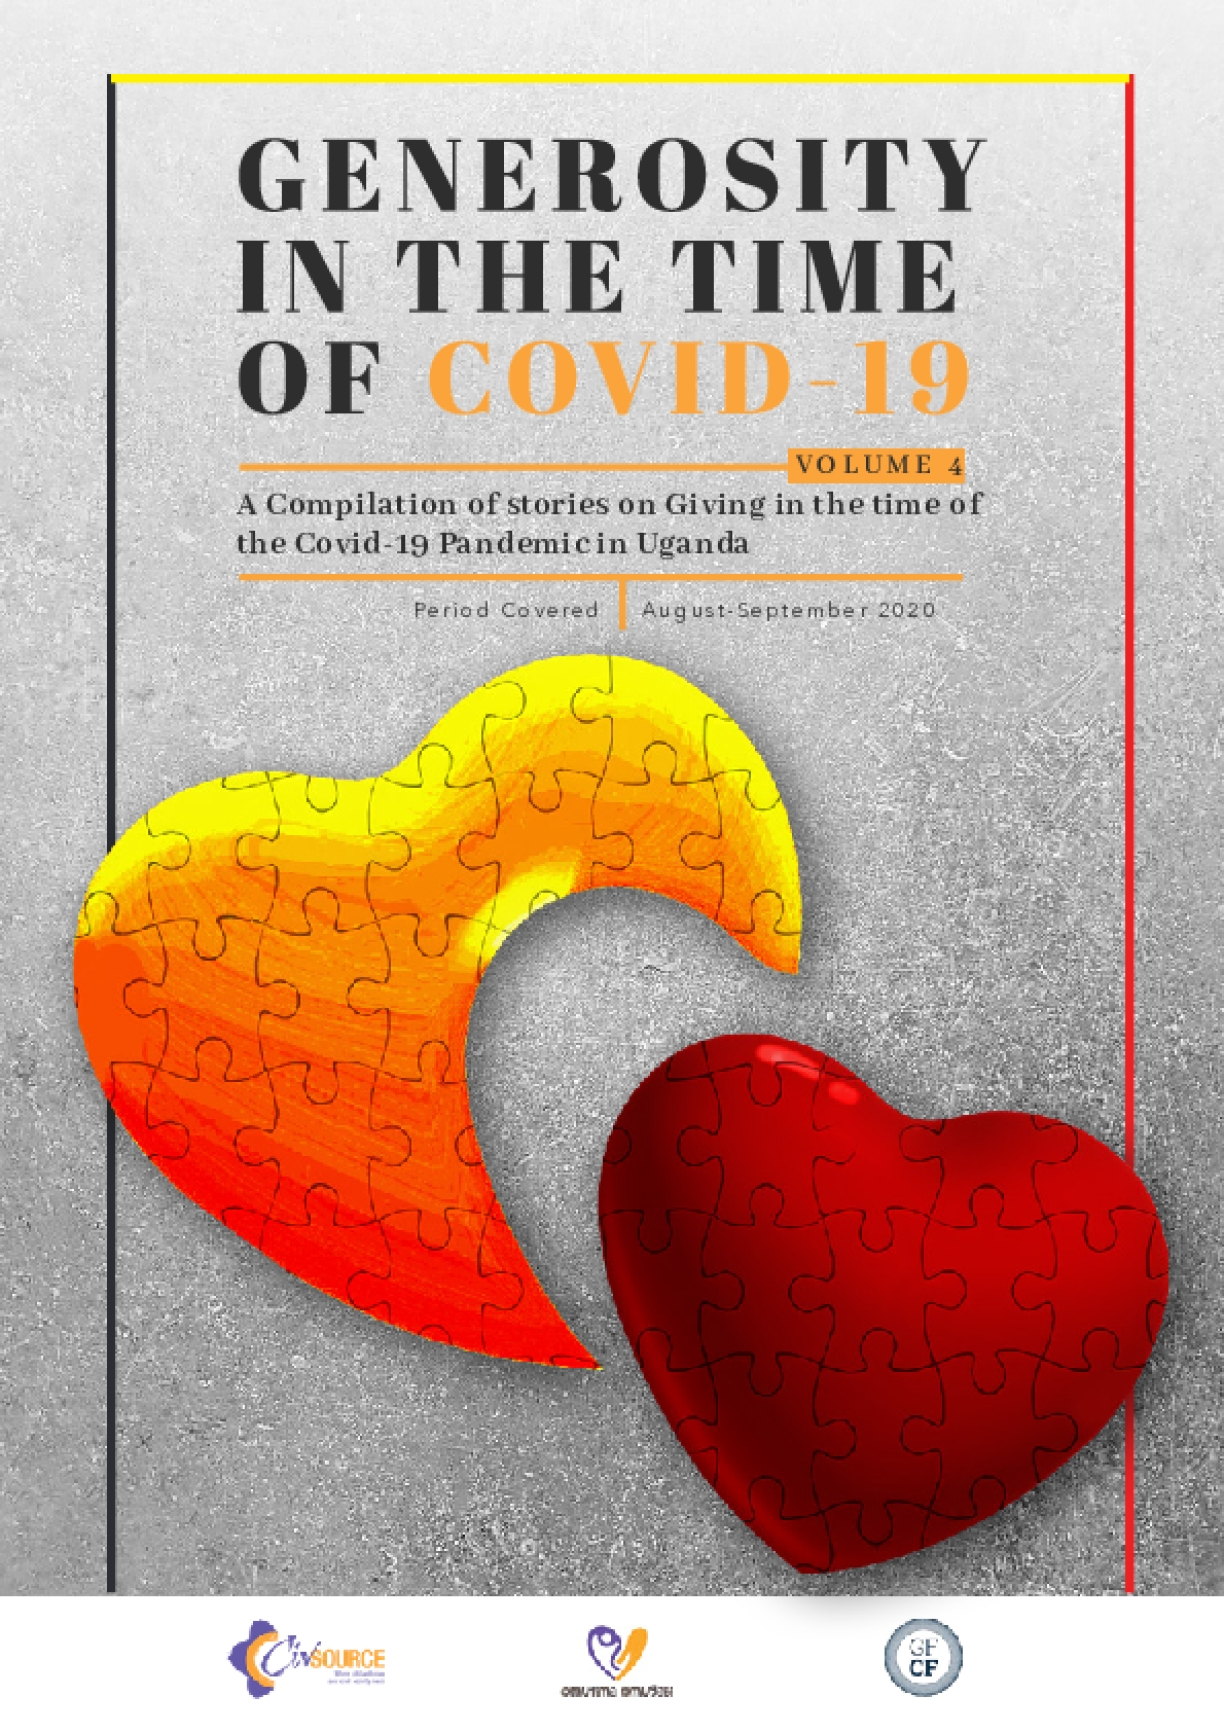 Generosity in the Time of COVID-19: A Compilation of stories on Giving in the time of the Covid-19 Pandemic in Uganda, Volume 4